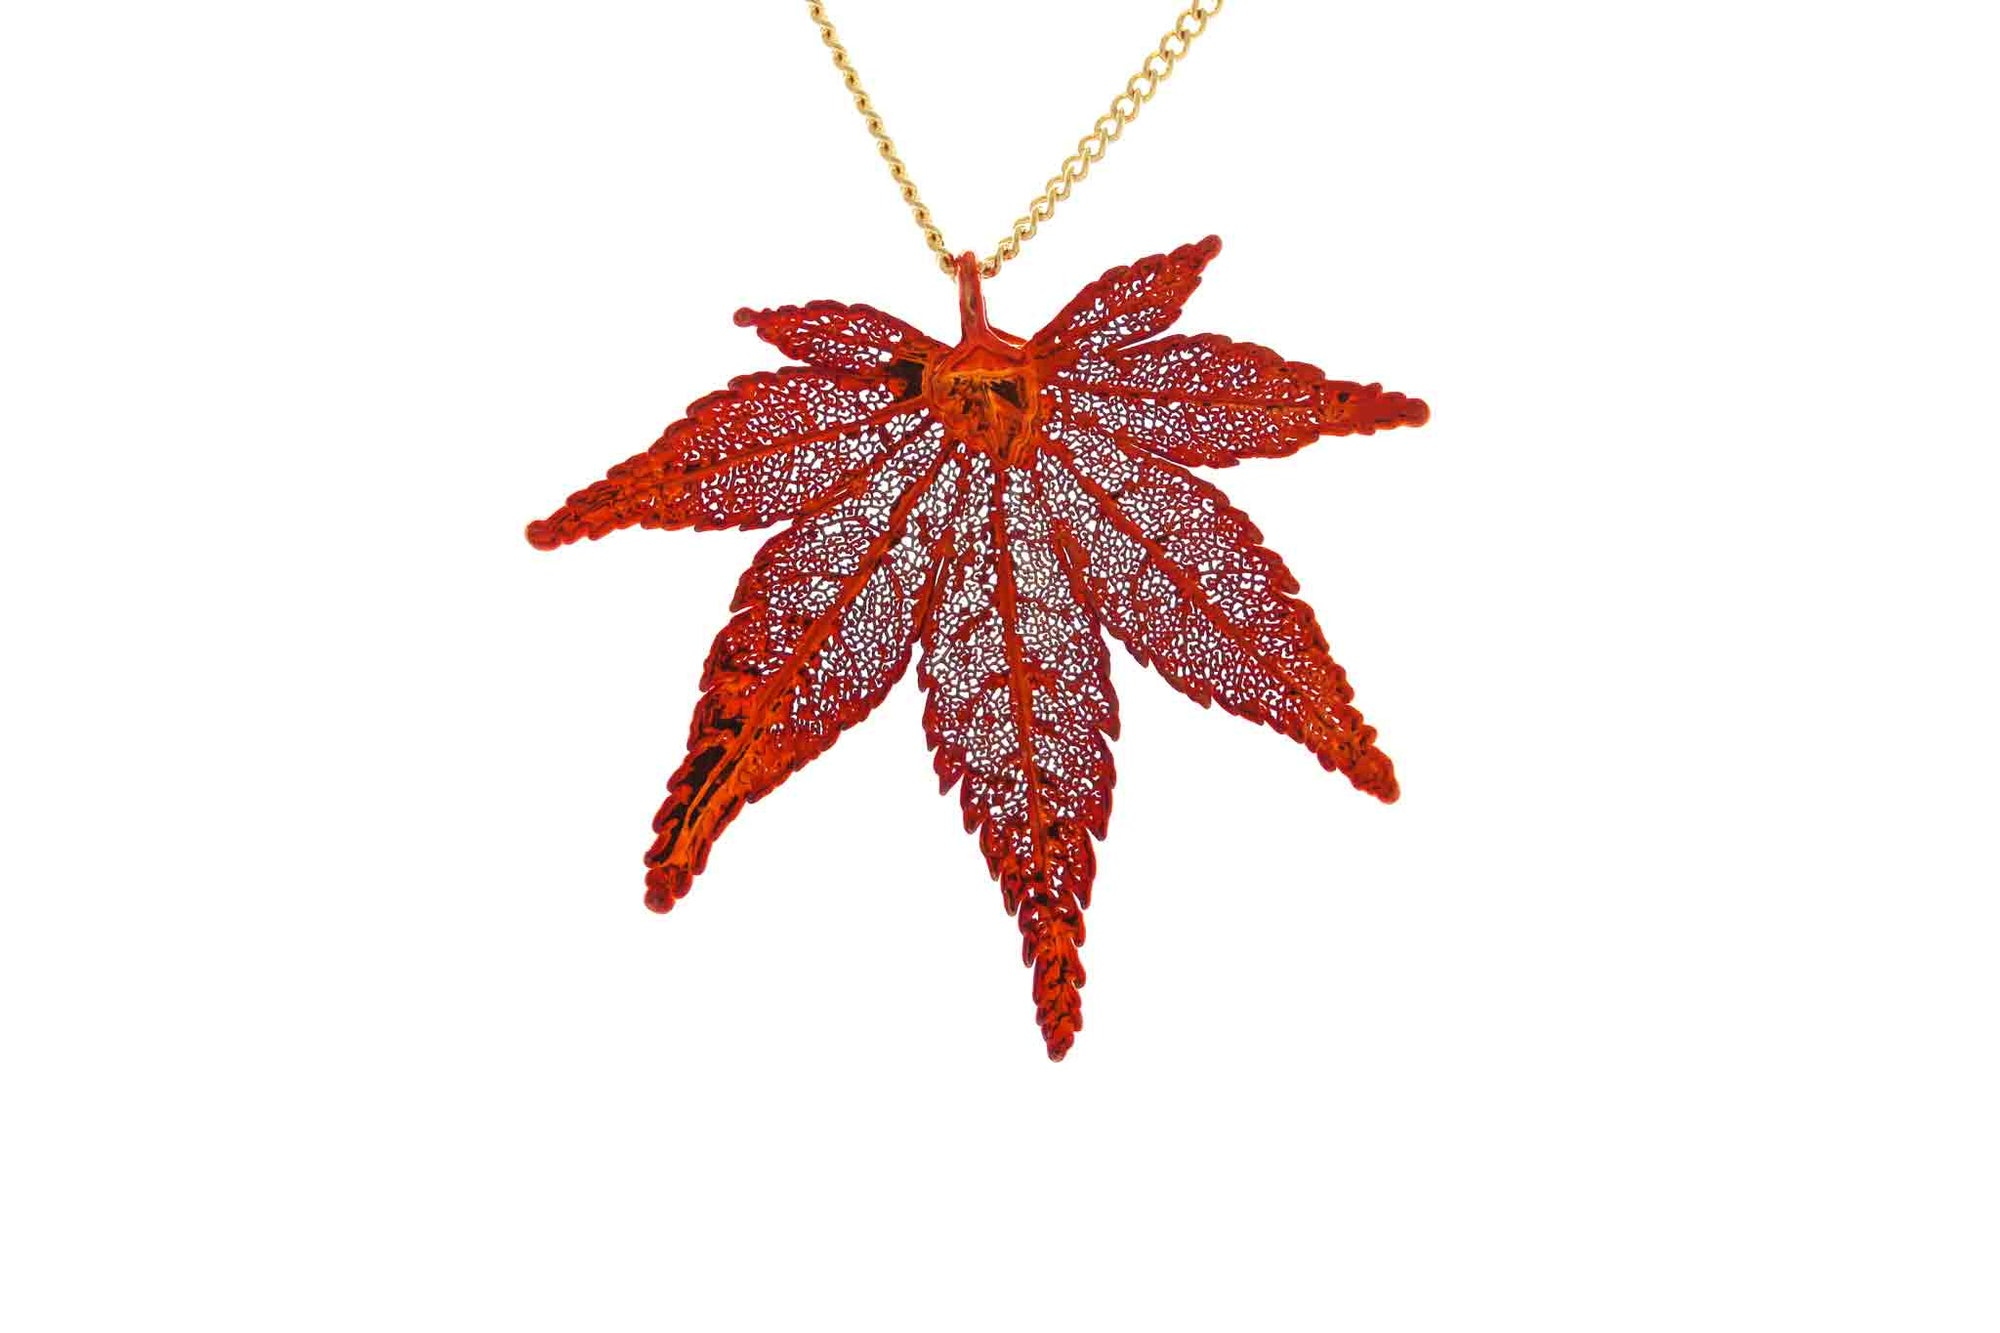 Real Japanese Maple Leaf Necklace In Iridescent Copper